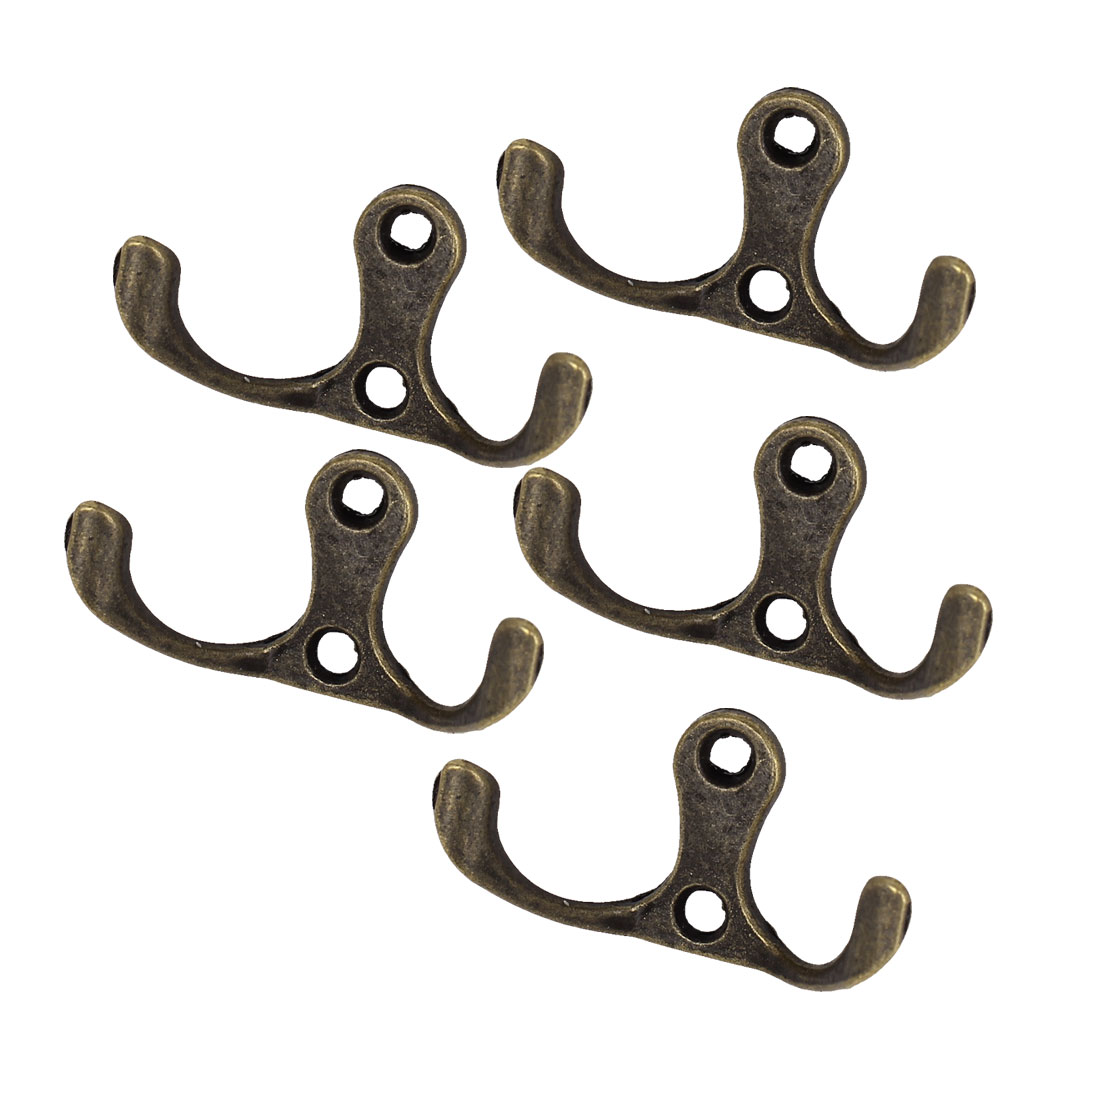 Uxcell 5pcs Bath Door Wall Hat Coat Towel Robe Hanging Retro Style Double Prong Hanger Hooks